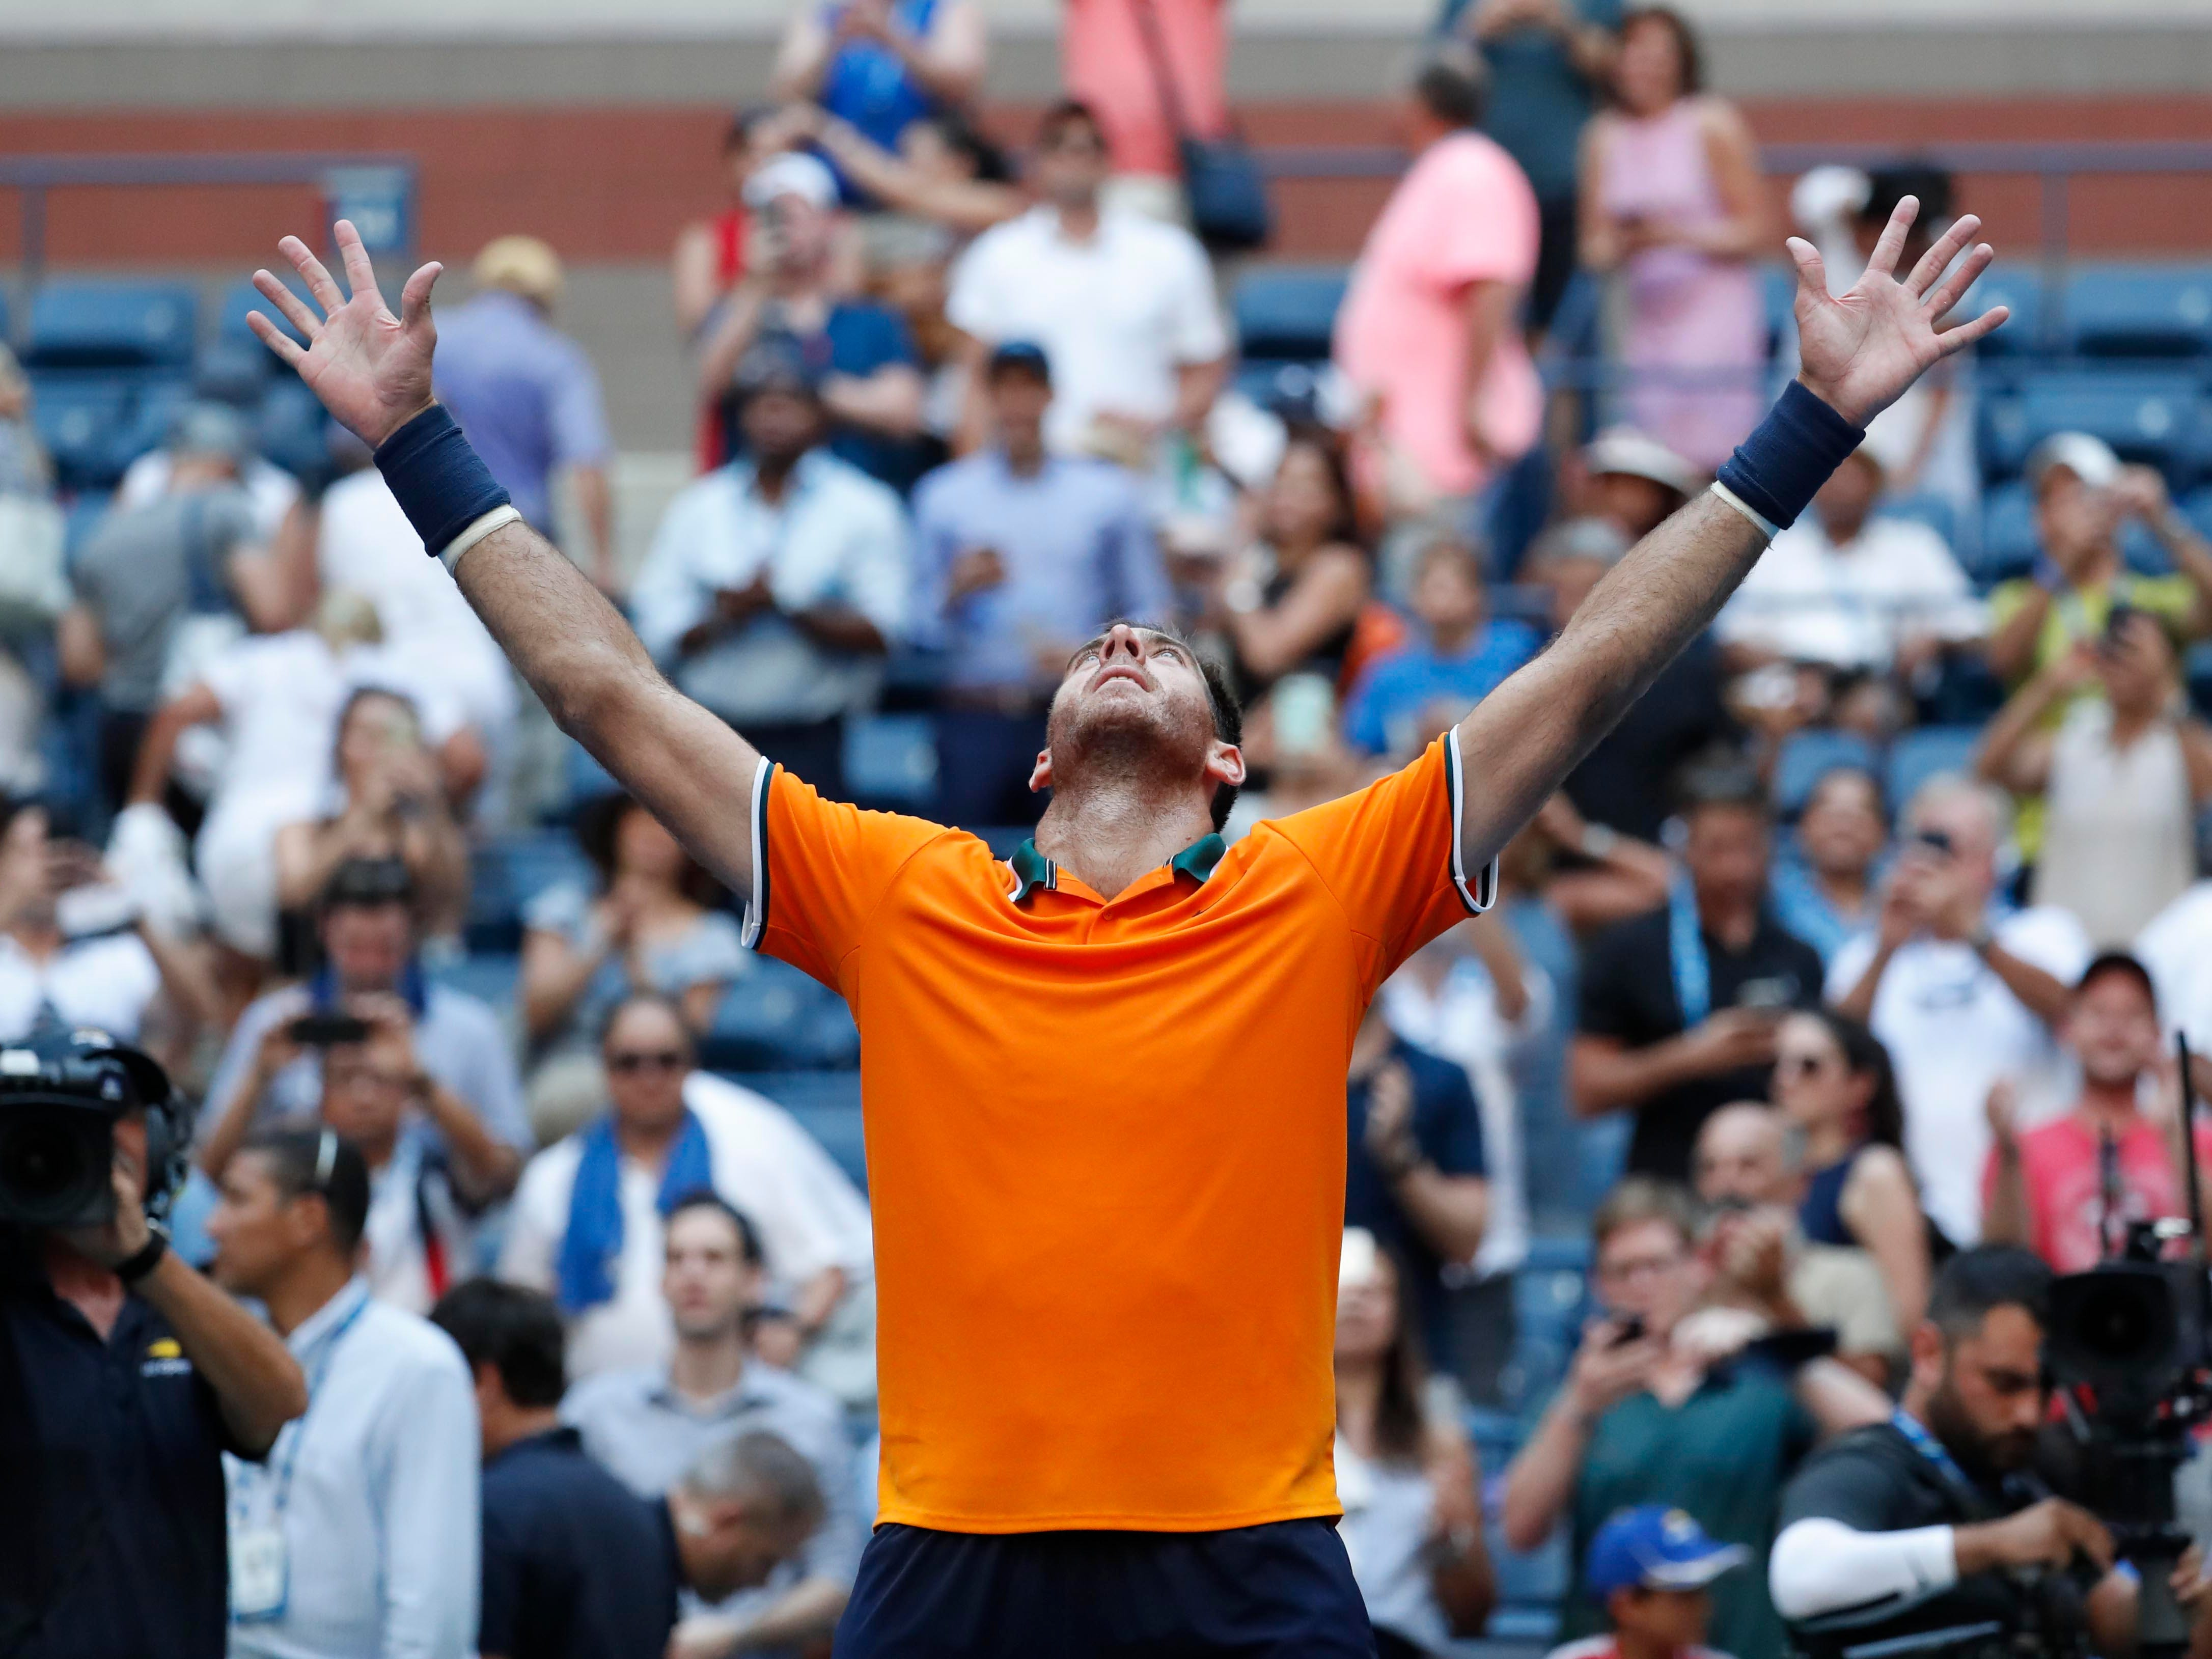 Juan Martin Del Potro of Argentina celebrates after his 6-7(5), 6-3, 7-6(4), 6-2 win against John Isner of the USA in the quarterfinals Tuesday.